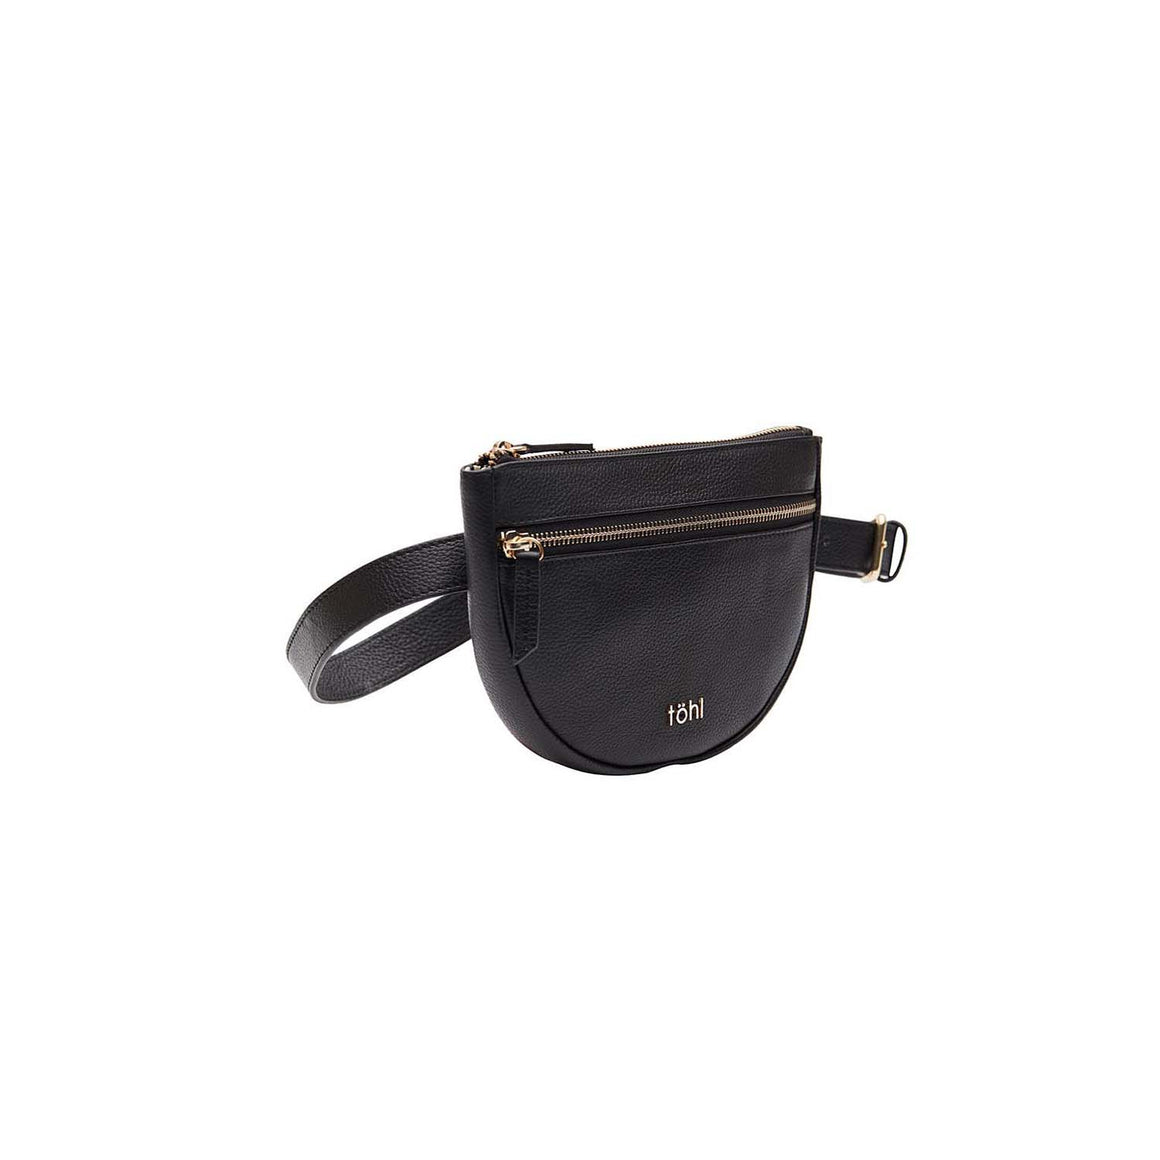 WP 0001 - TOHL RISELY WOMEN'S WAIST POUCH - CHARCOAL BLACK